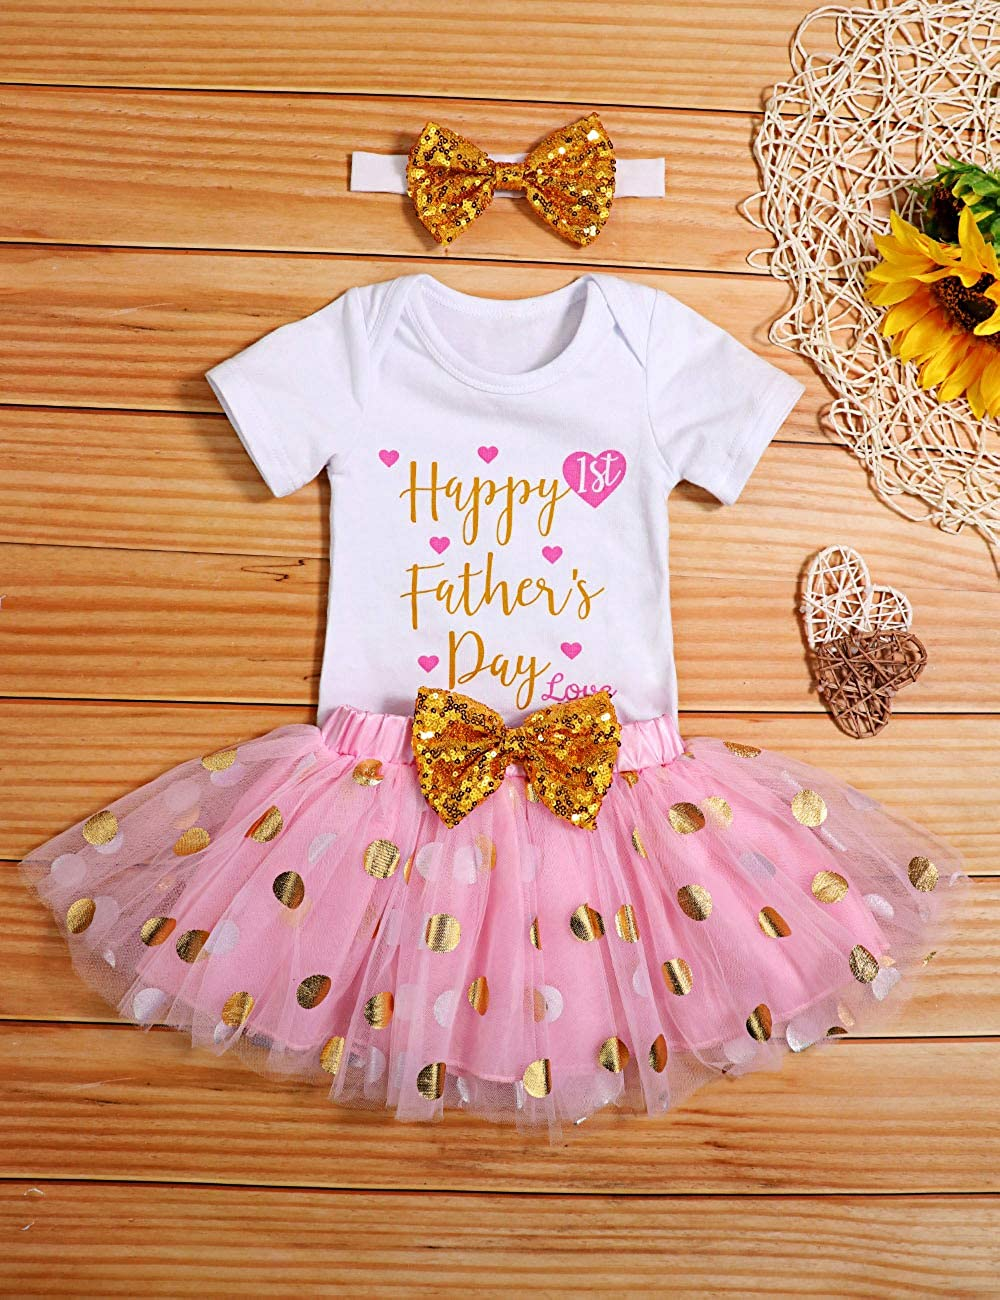 Kids Girls Summer Clothes White Off-Shoulder Ruffle Tops with Bow Stripe Trousers Toddler 2Pcs Outfits Set